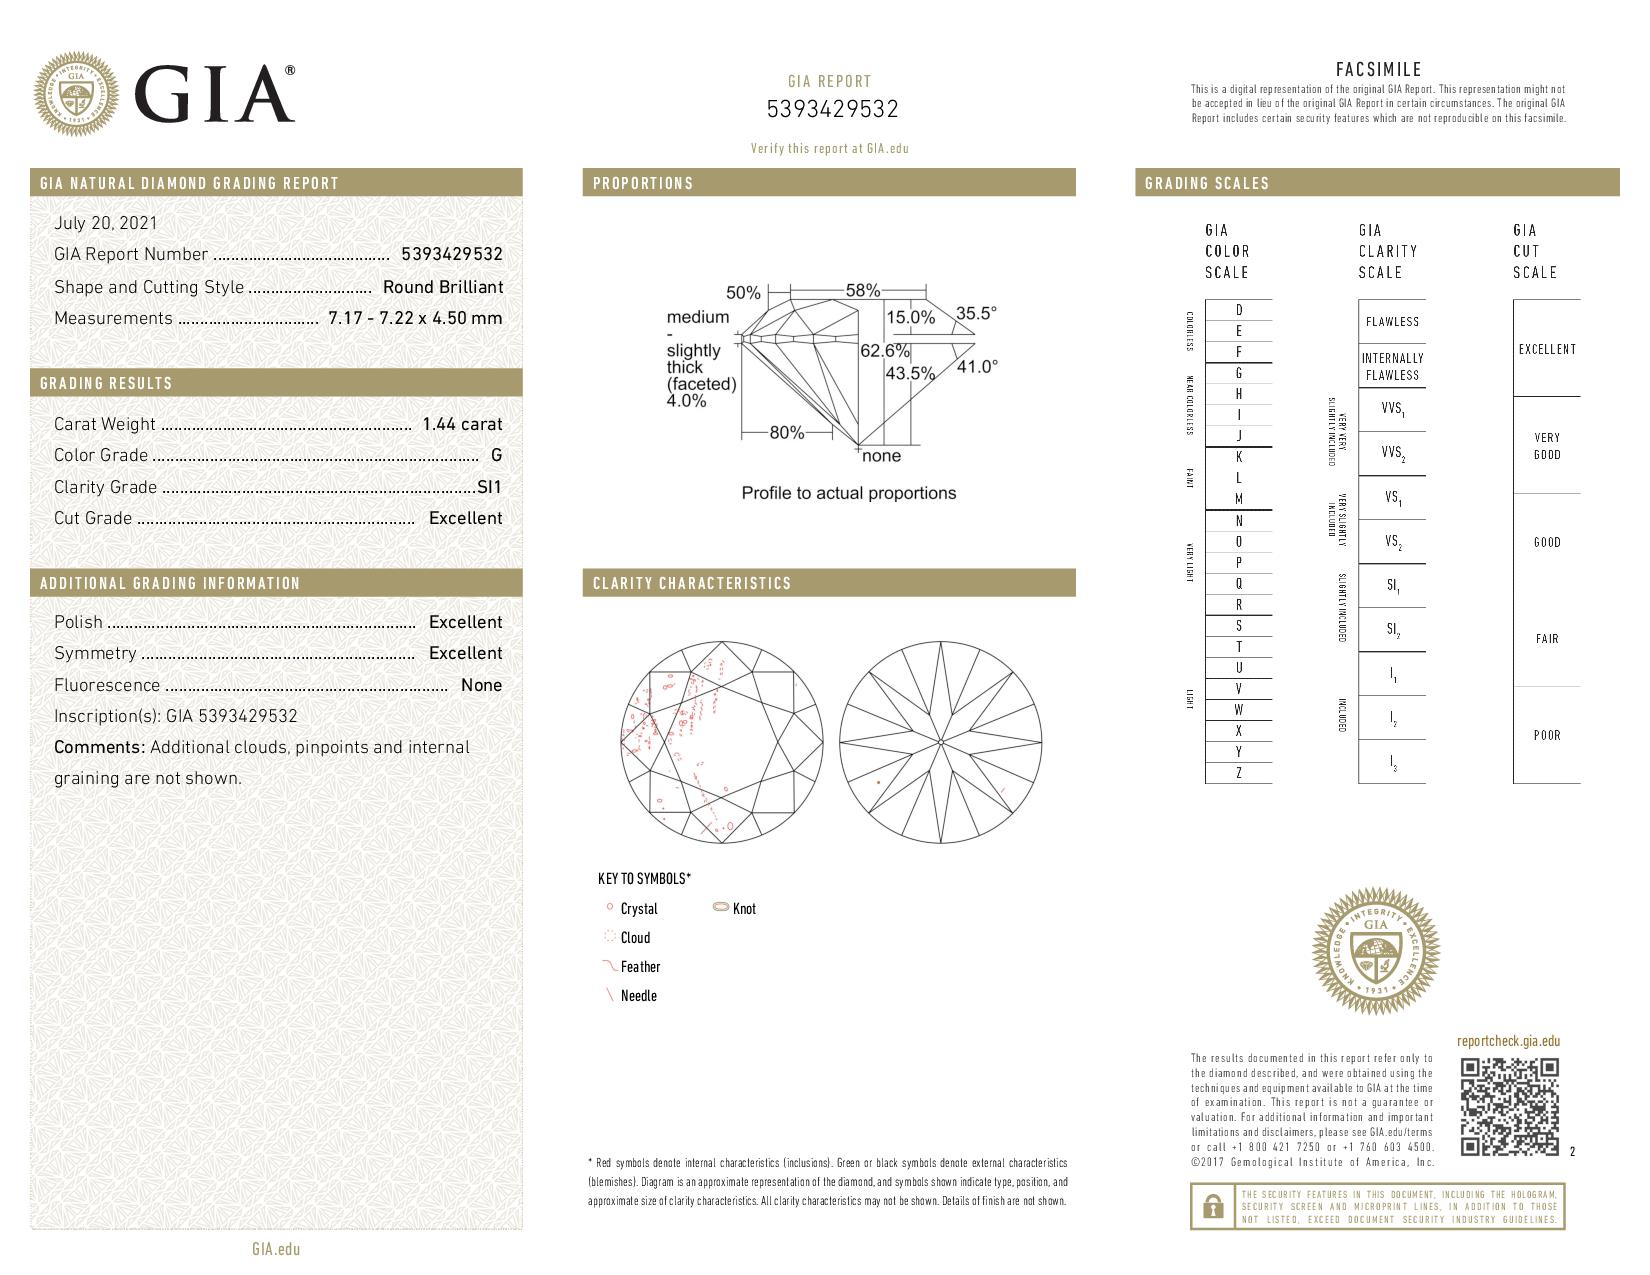 This is a 1.44 carat round shape, G color, SI1 clarity natural diamond accompanied by a GIA grading report.